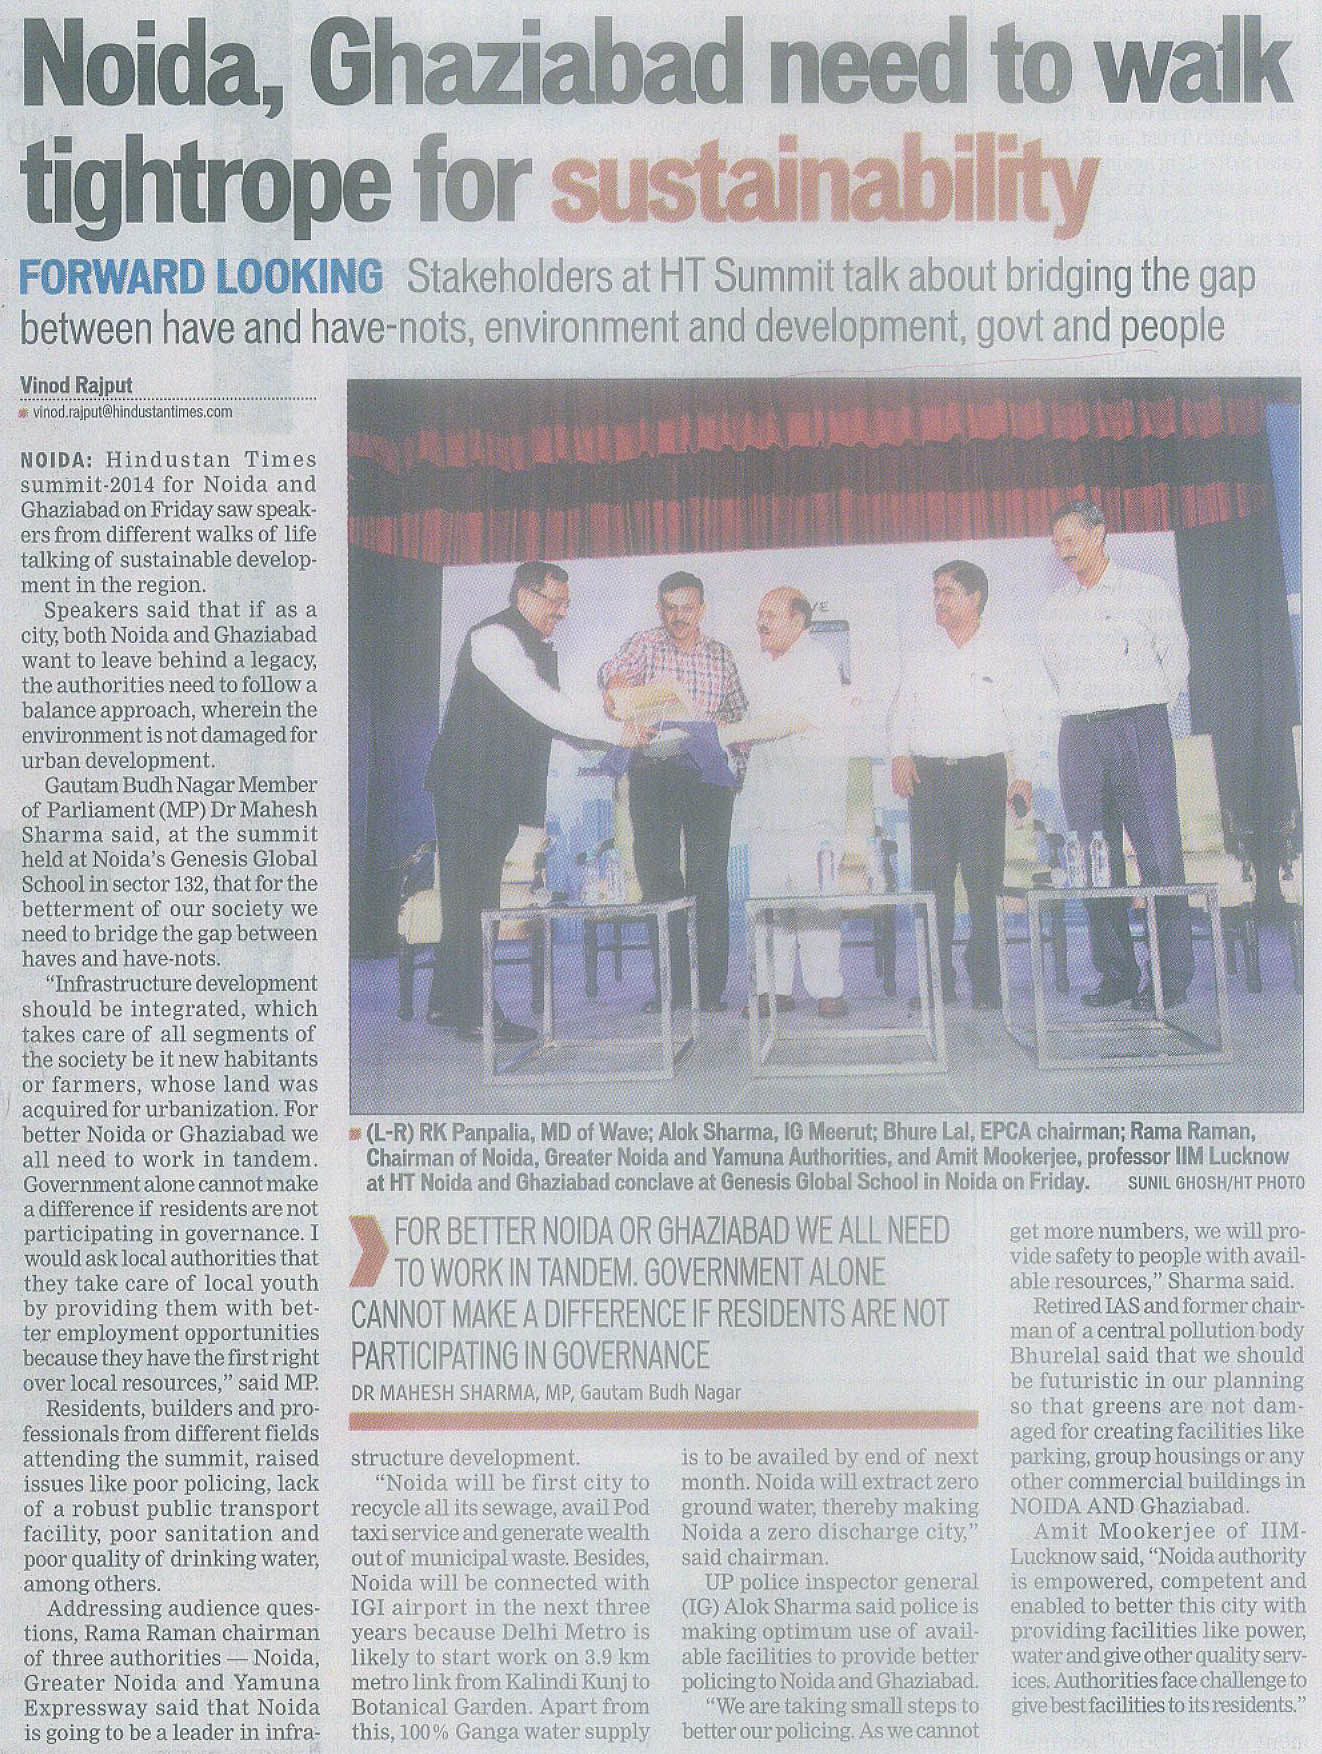 Hindustan Times in association with Wave Group organized Hindustan Times Summit-2014 for Noida and Ghaziabad at Genesis Global School